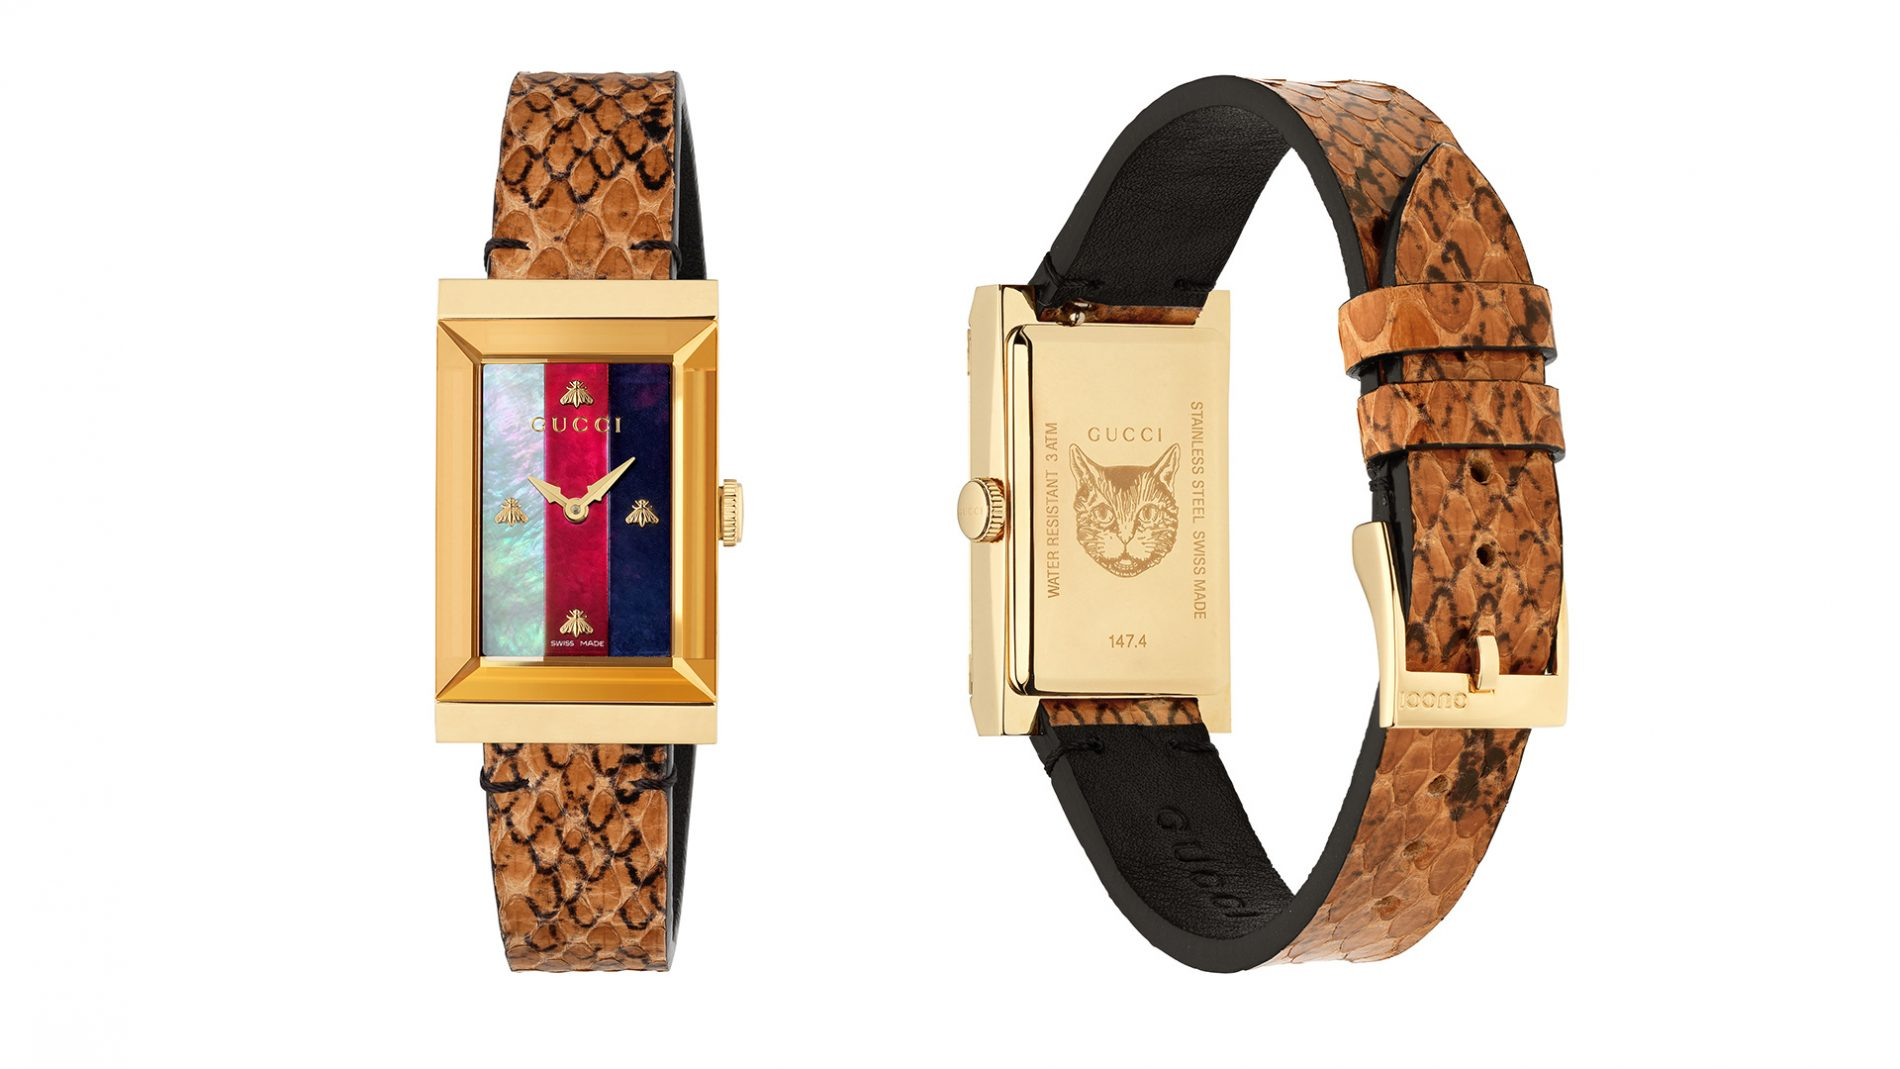 El Corte Inglés Watch Luxury Gucci Snakeskin